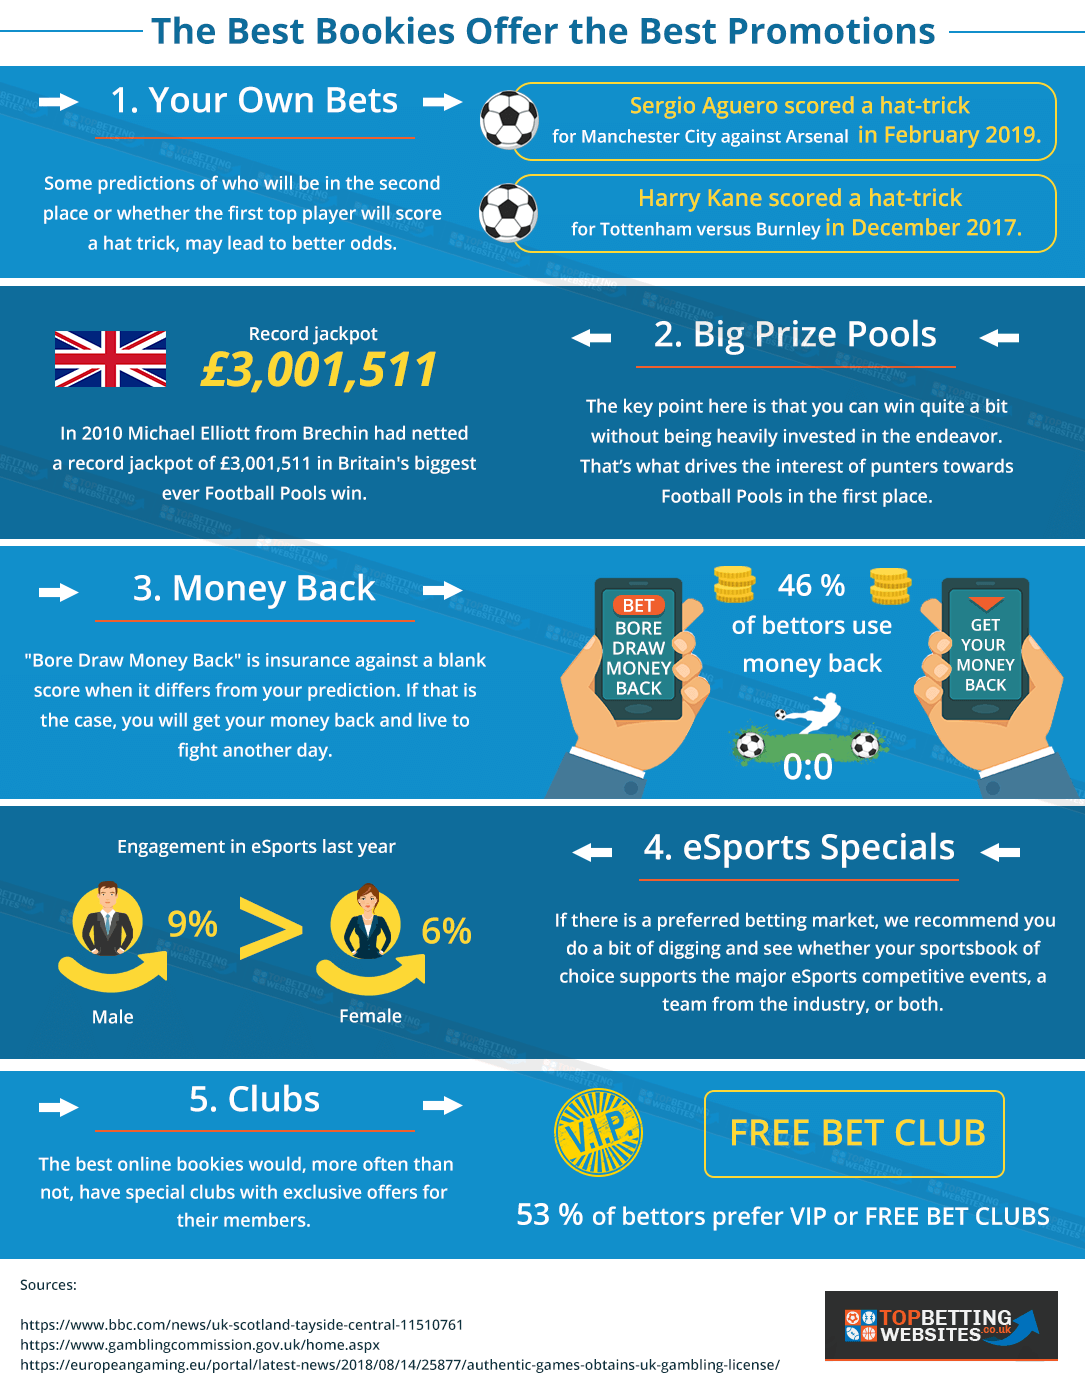 Best Betting Offers 2019 - Find Over £987 in UK's Welcome Bonuses